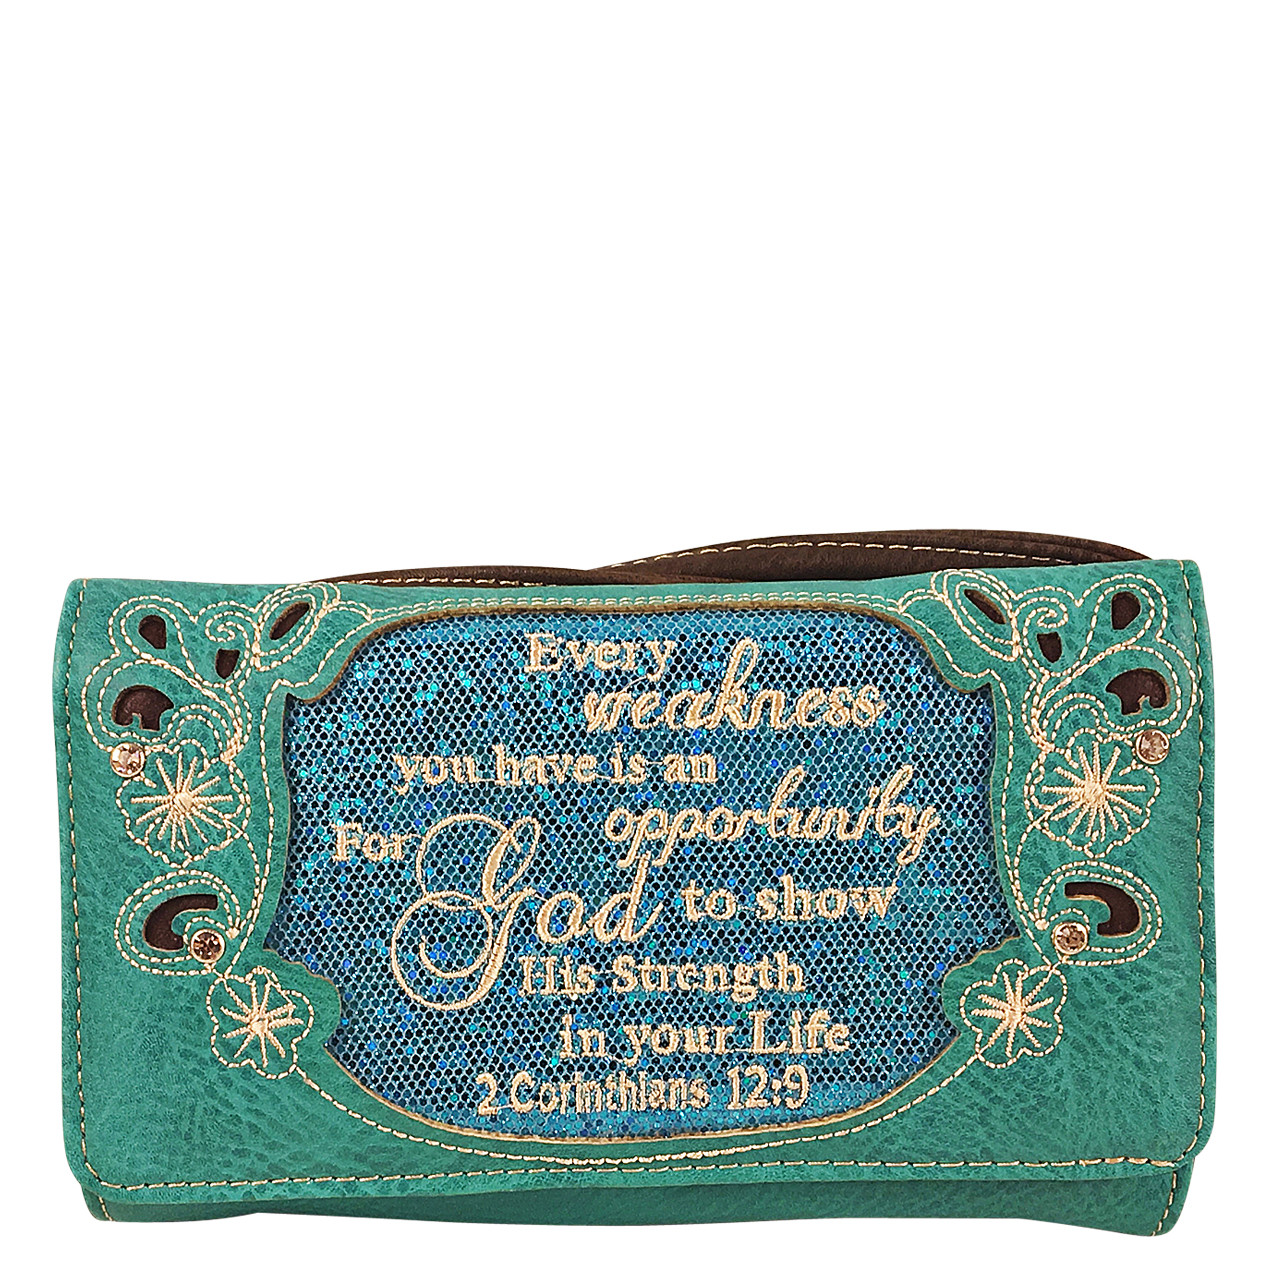 TURQUOISE BIBLE LIFE QUOTE RHINESTONE STUDDED LOOK CLUTCH TRIFOLD WALLET